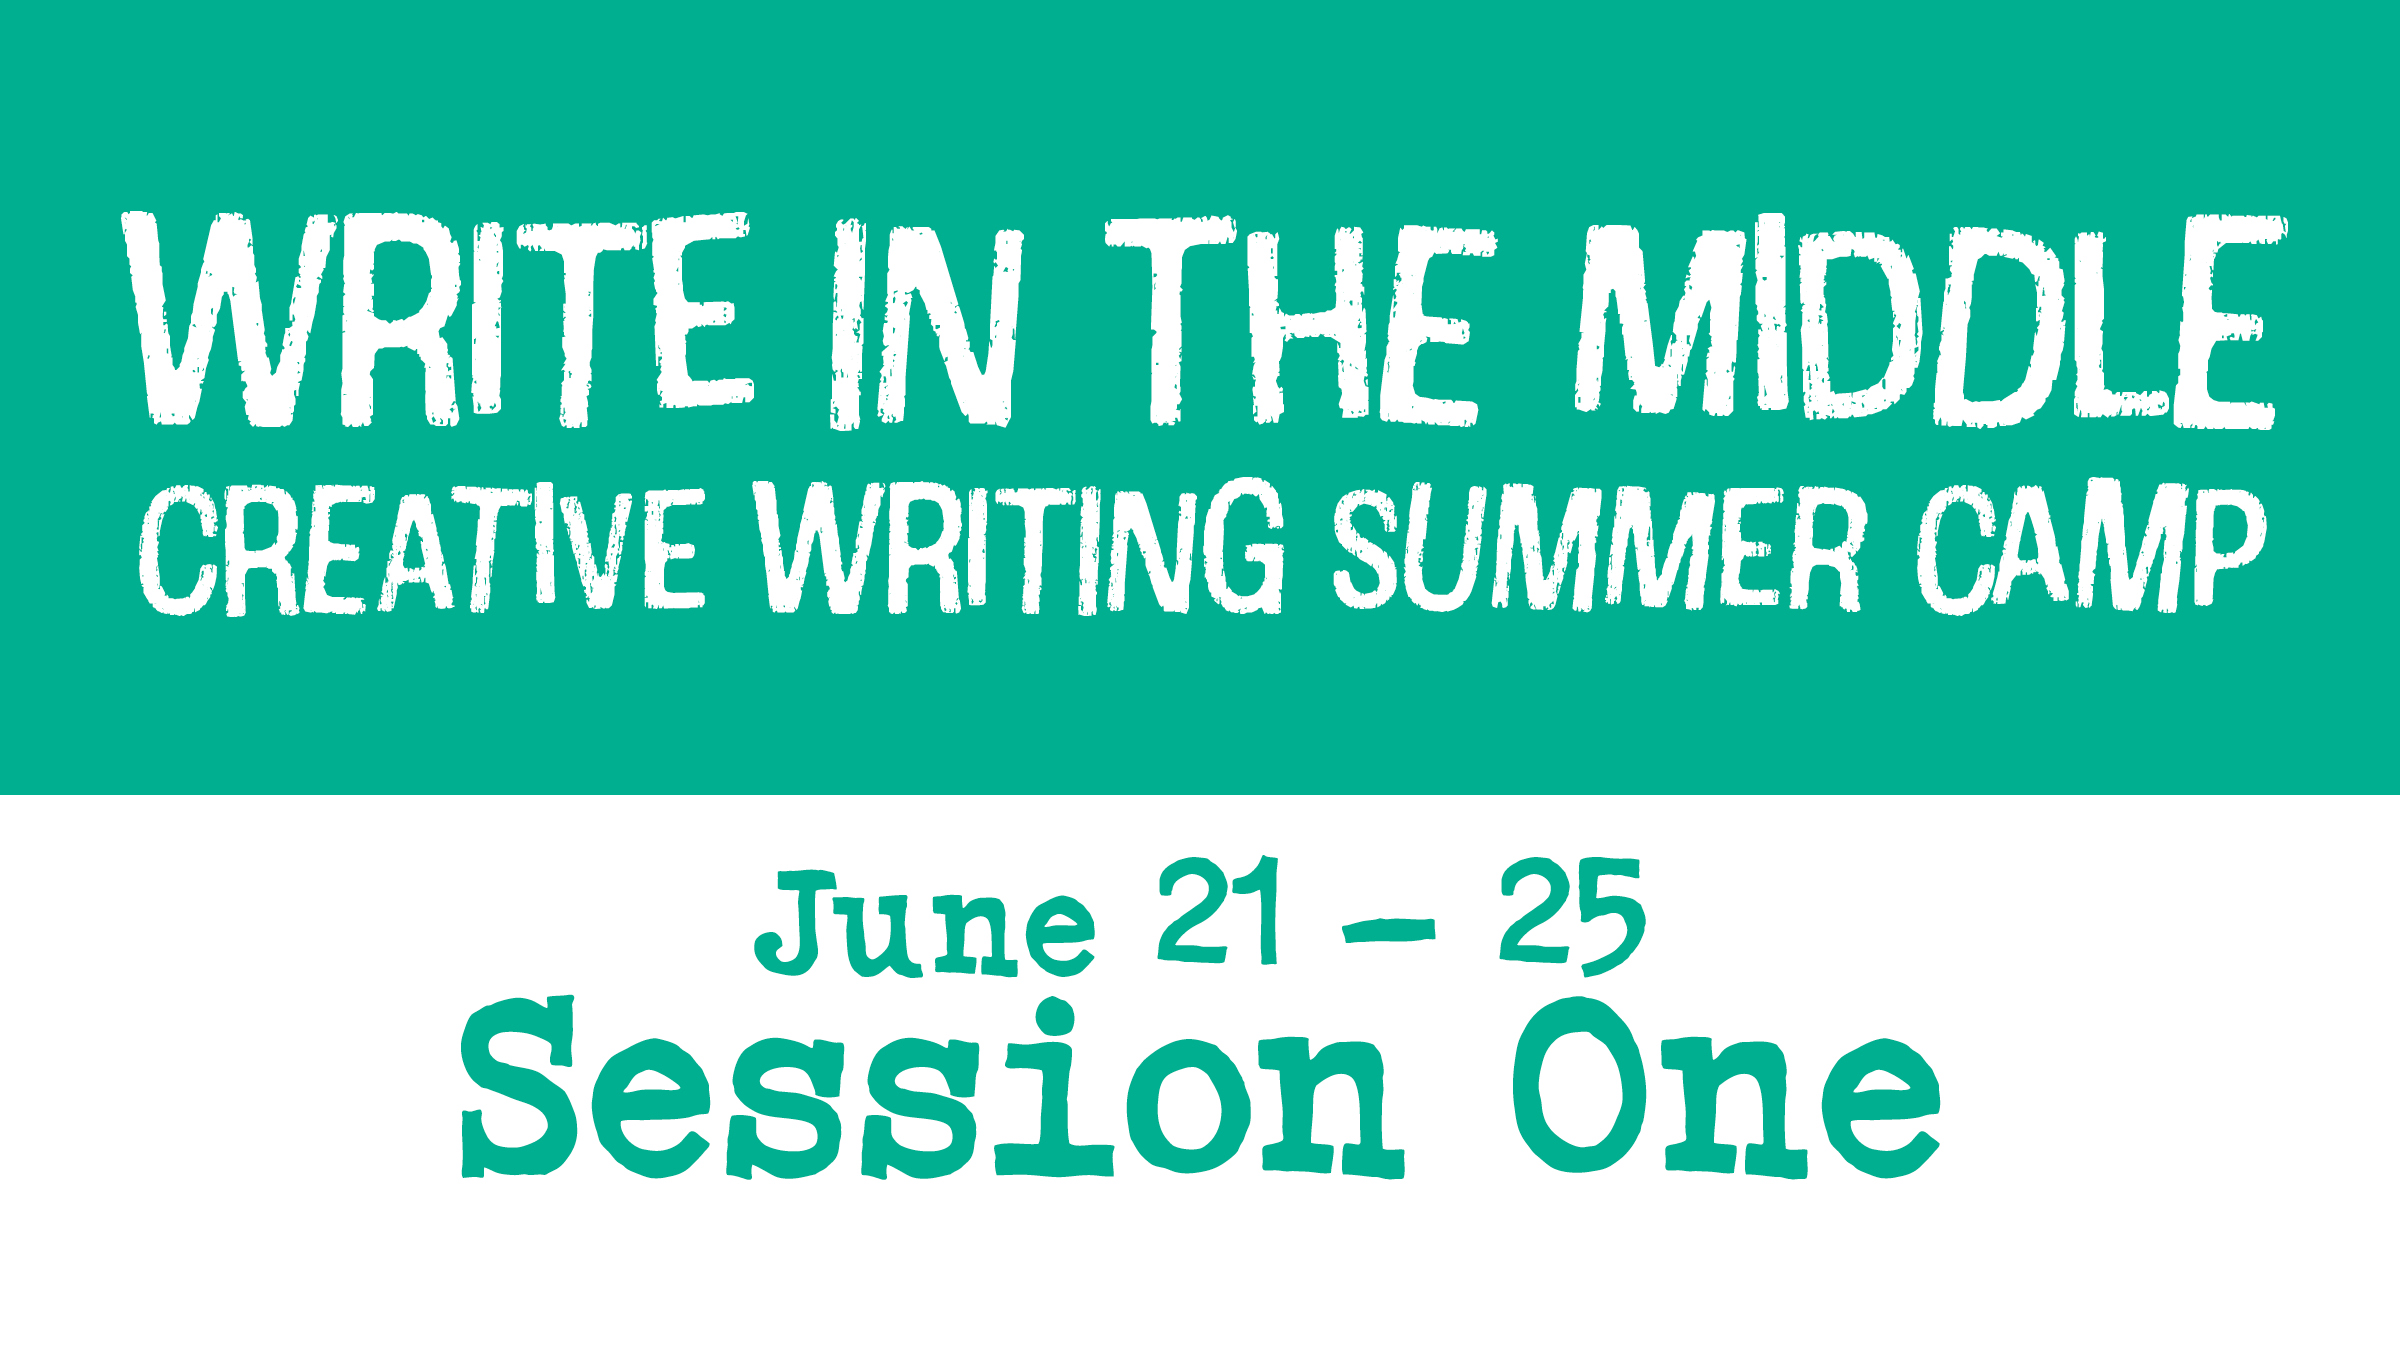 Write in the Middle Creative Writing Summer Camp Session One June 21 - 25